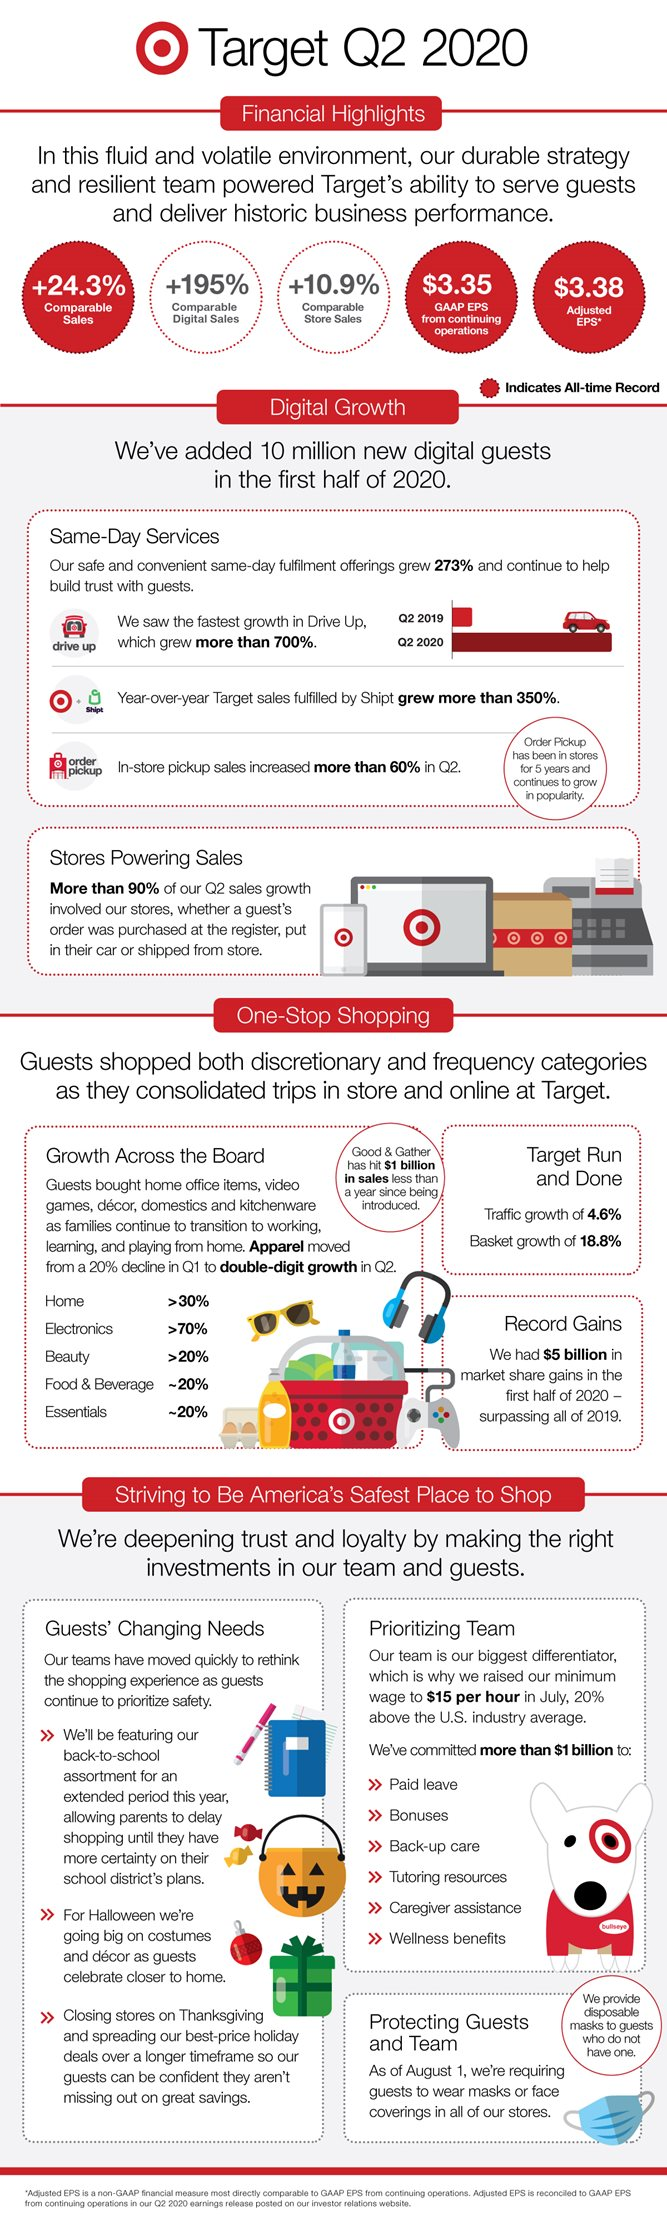 Halloween 2020 Revenue A Closer Look at Target's Q2 2020